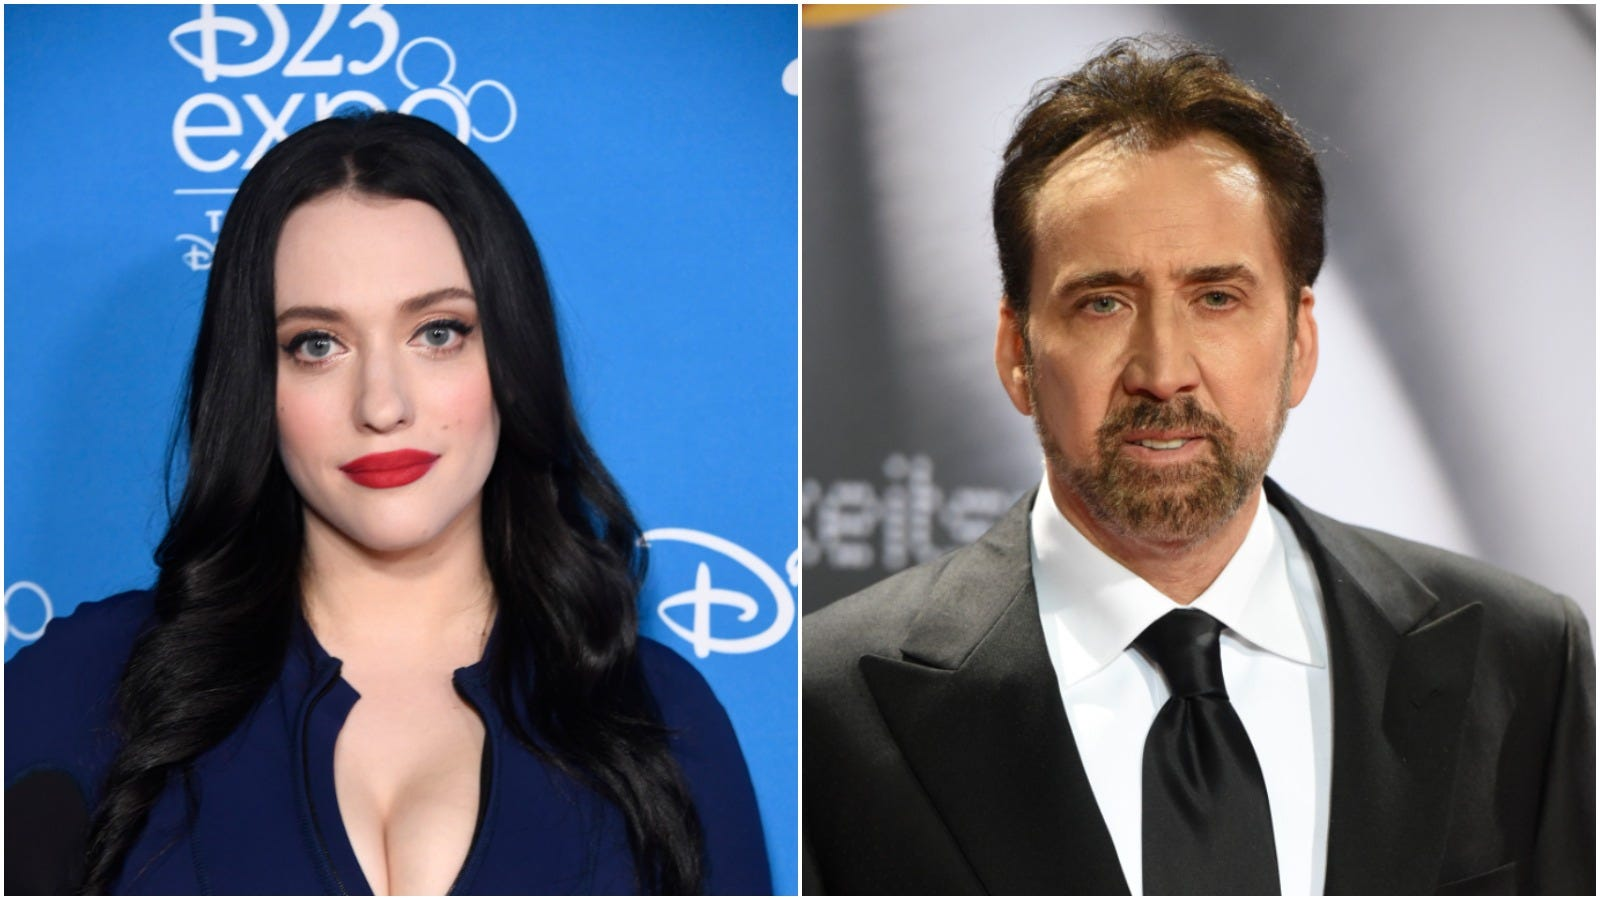 Kat Dennings says Nicolas Cage refused to touch her during 'craziest' audition: 'He was so respectful!'